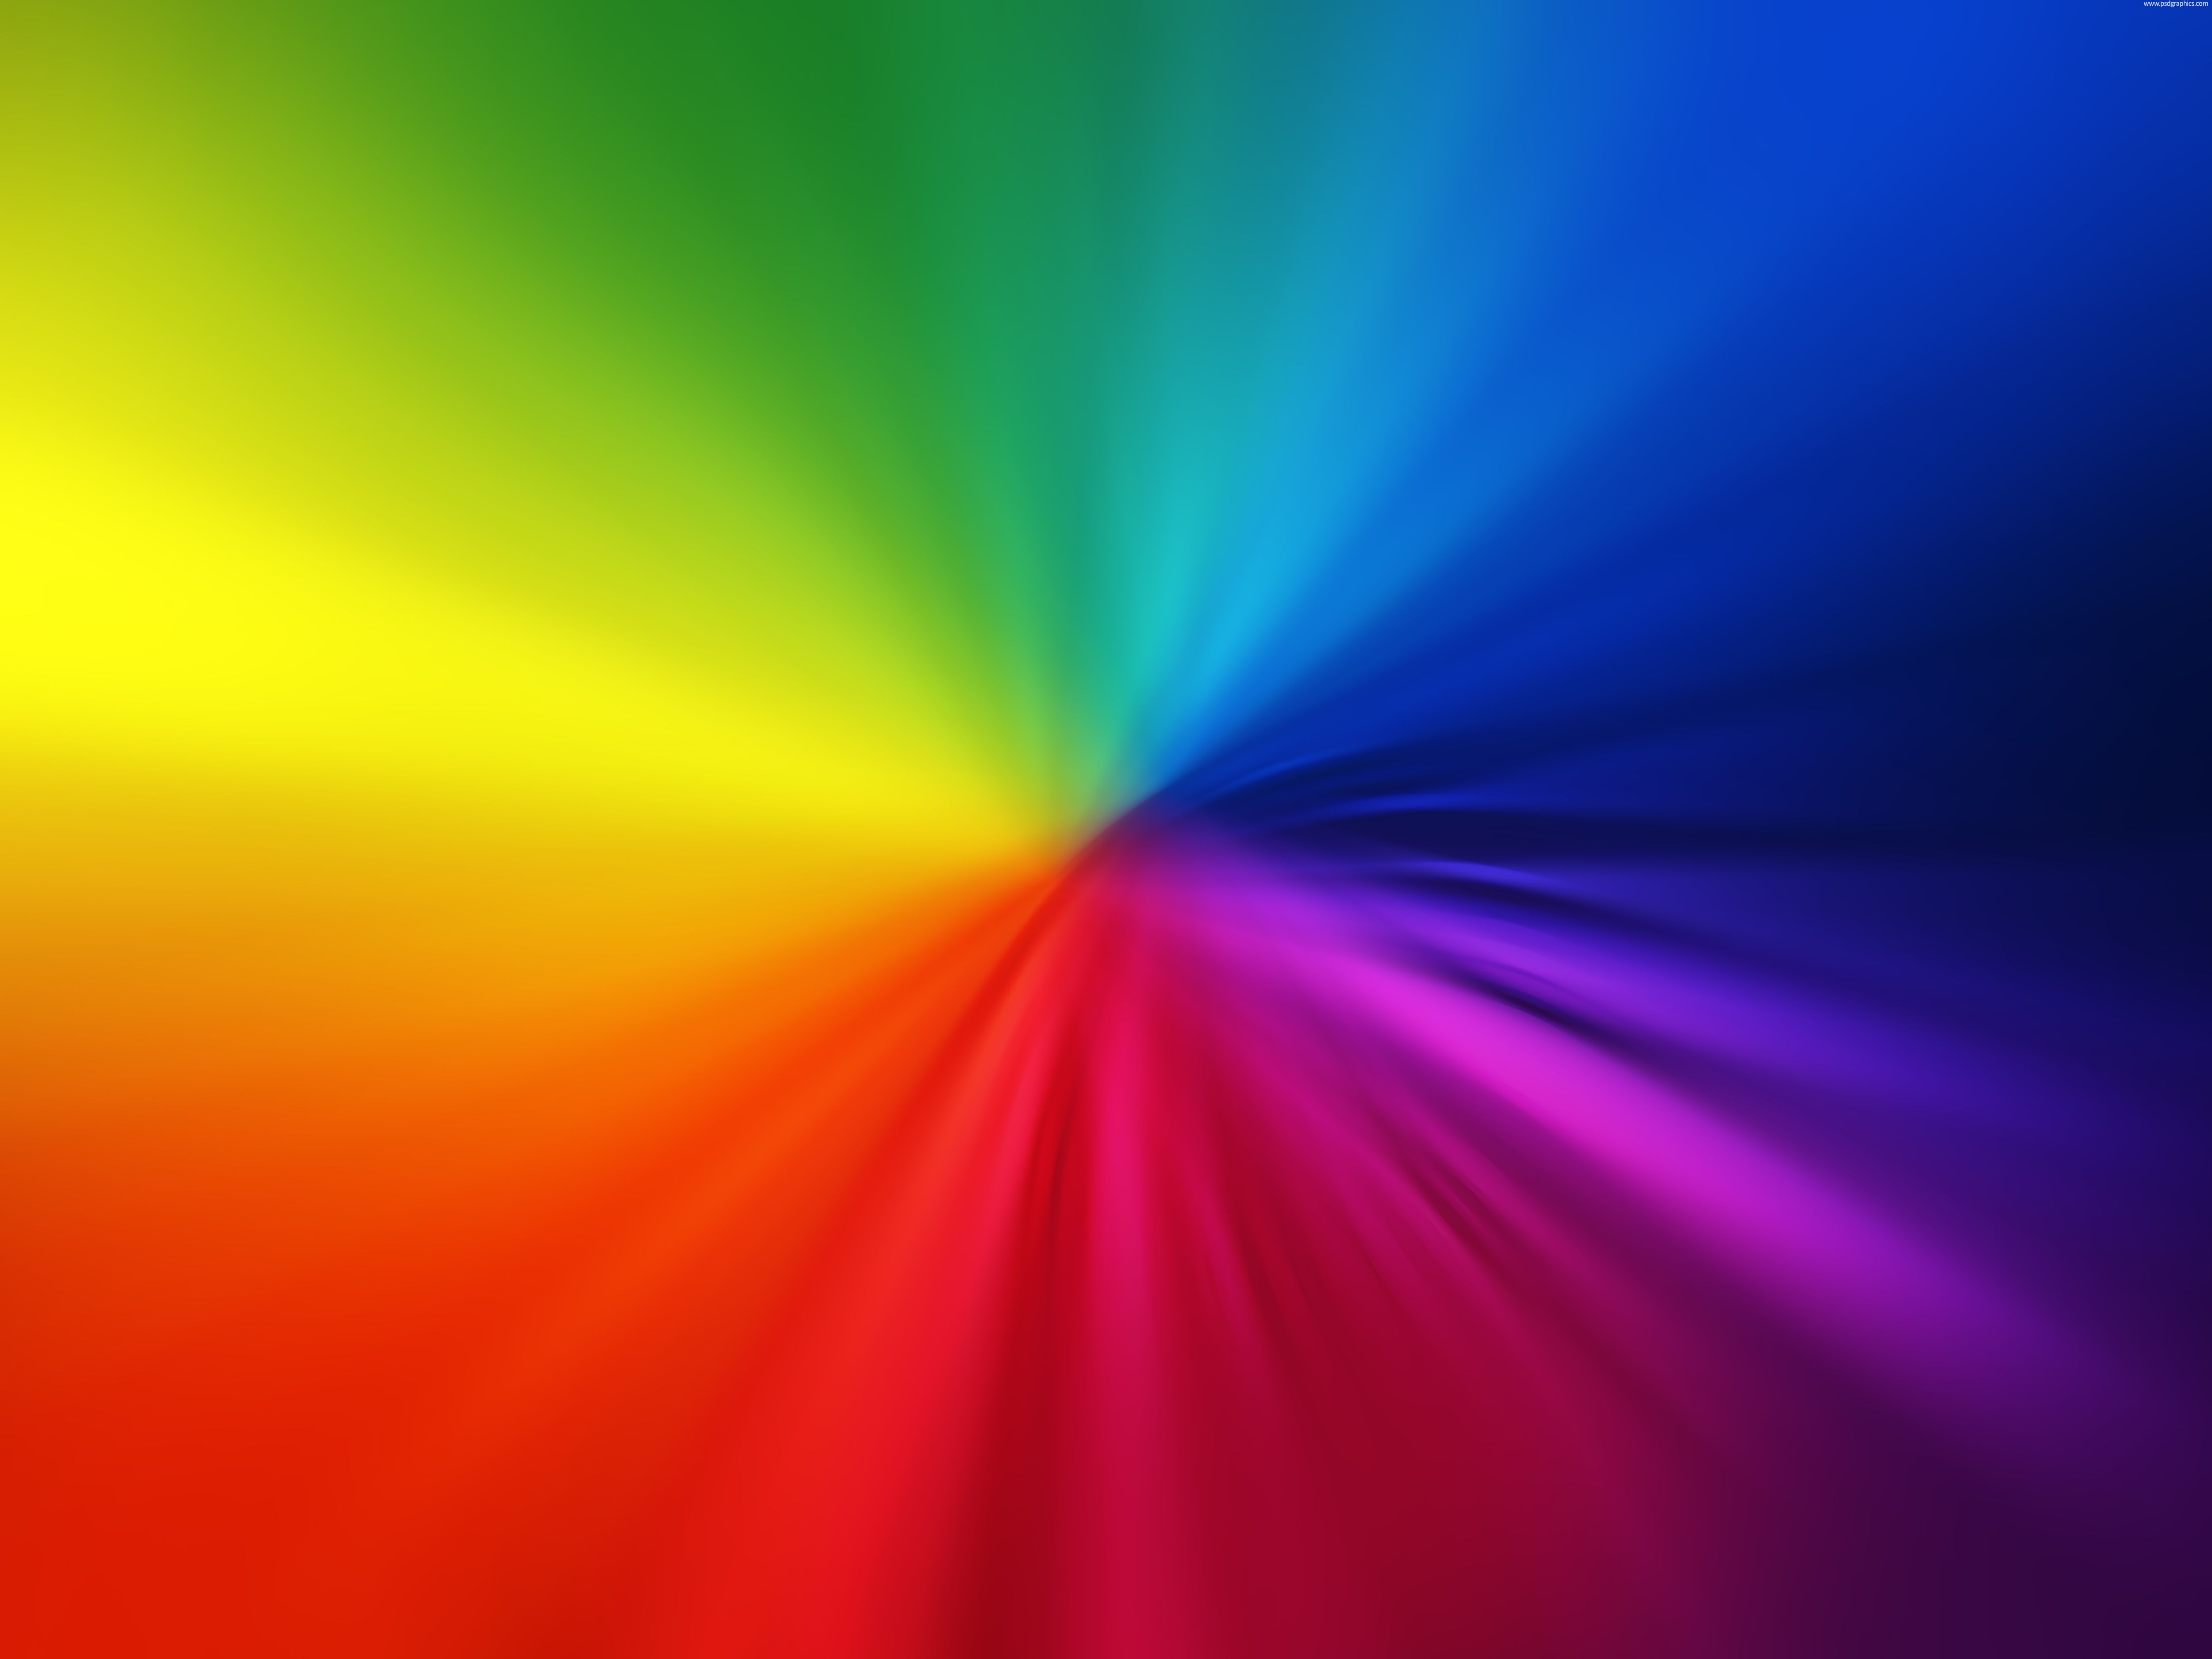 beautiful blurry rainbow colors made with a soft colorful gradients hi res glowing background design - Rainbow Color